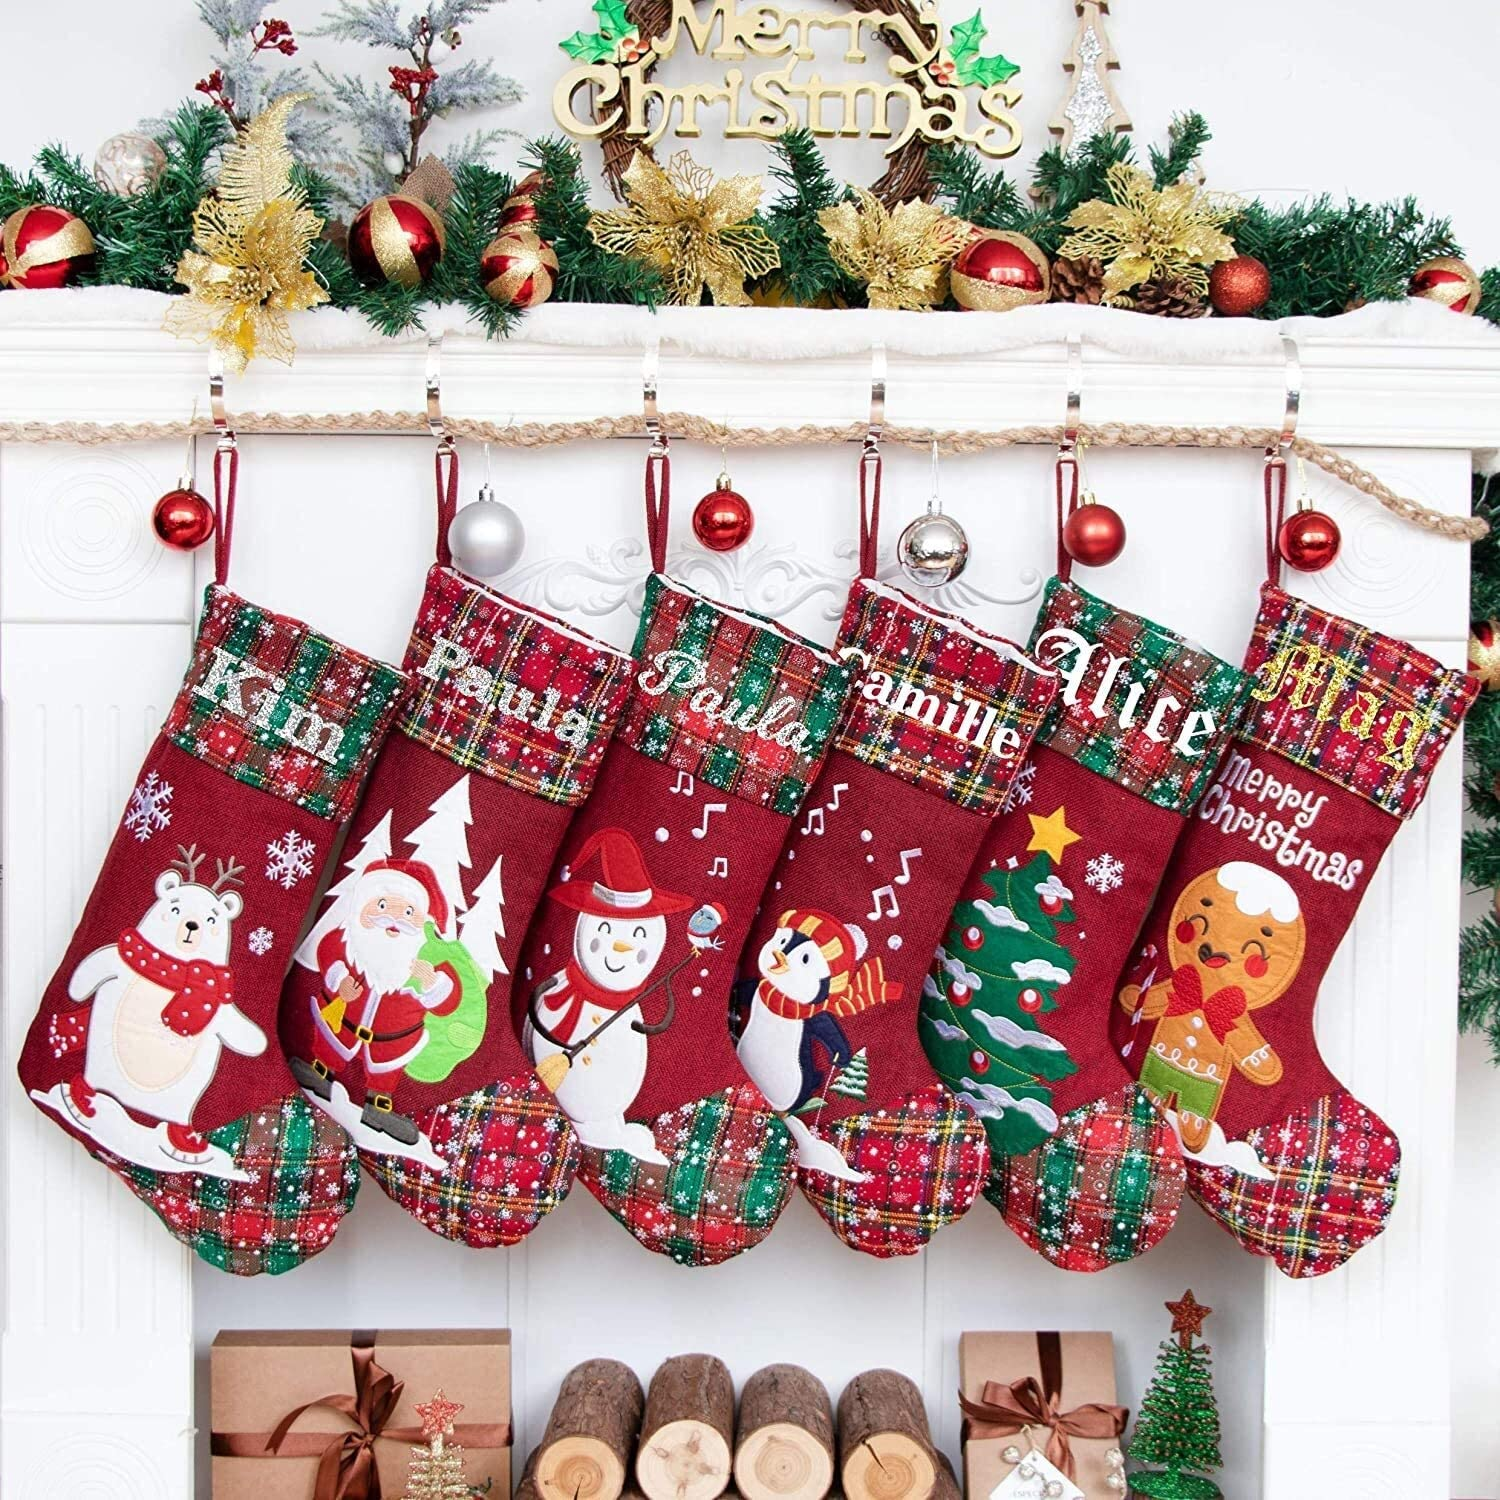 2020 NEW Max 51% OFF Personalized Christmas Bargain sale Stocking G Names with Xmas Socks